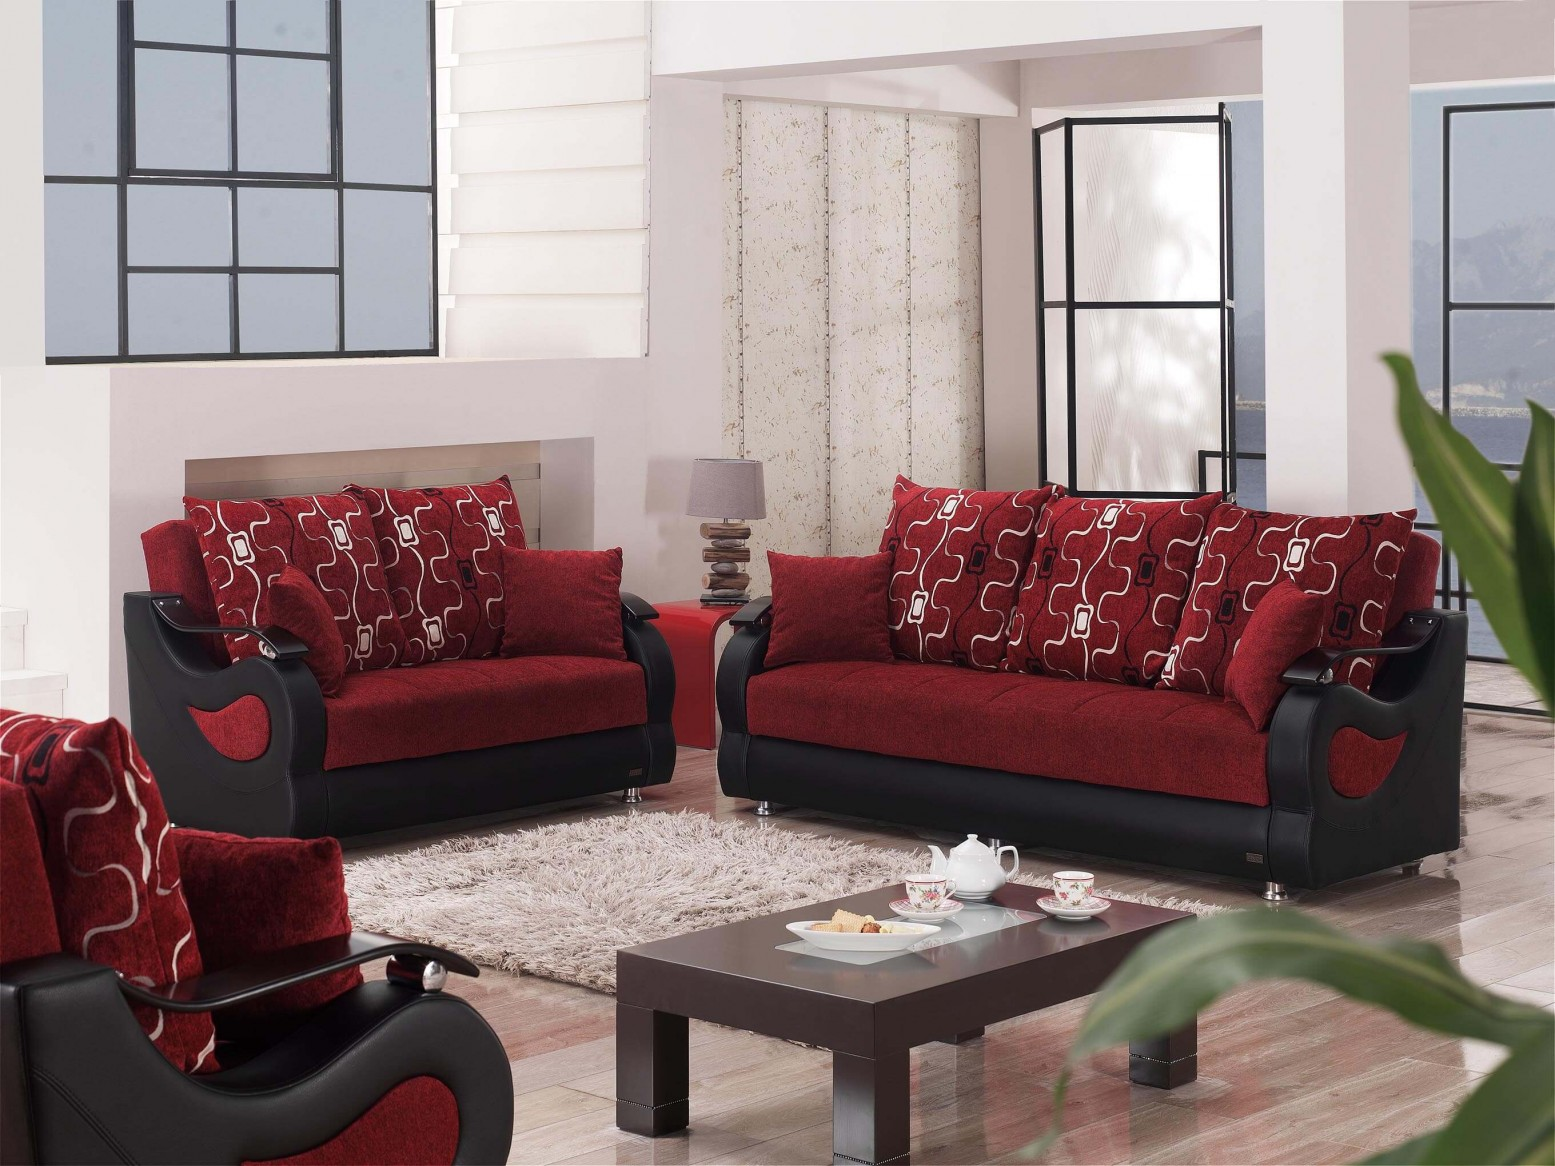 ✅ Pittsburgh Fabric/Vinyl/Wood Storage Living Room Set | Sohomod.com